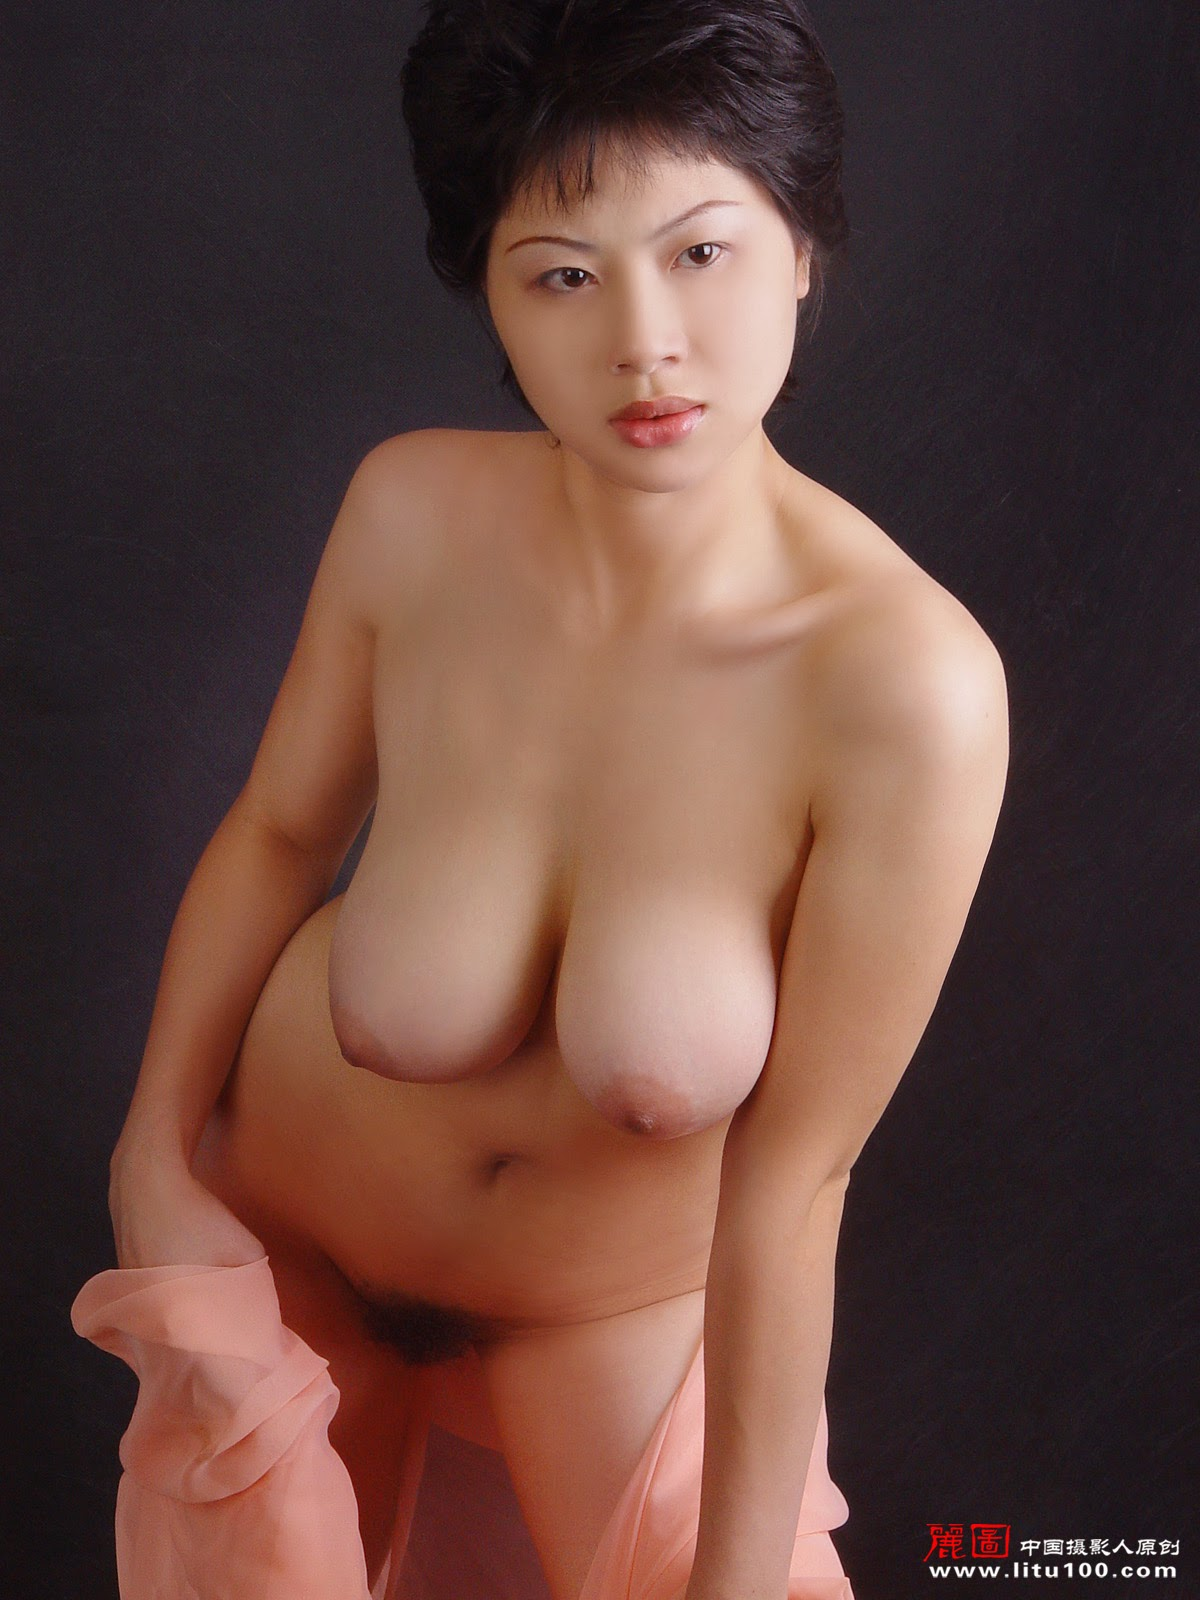 Authoritative Taiwanese artist naked photo